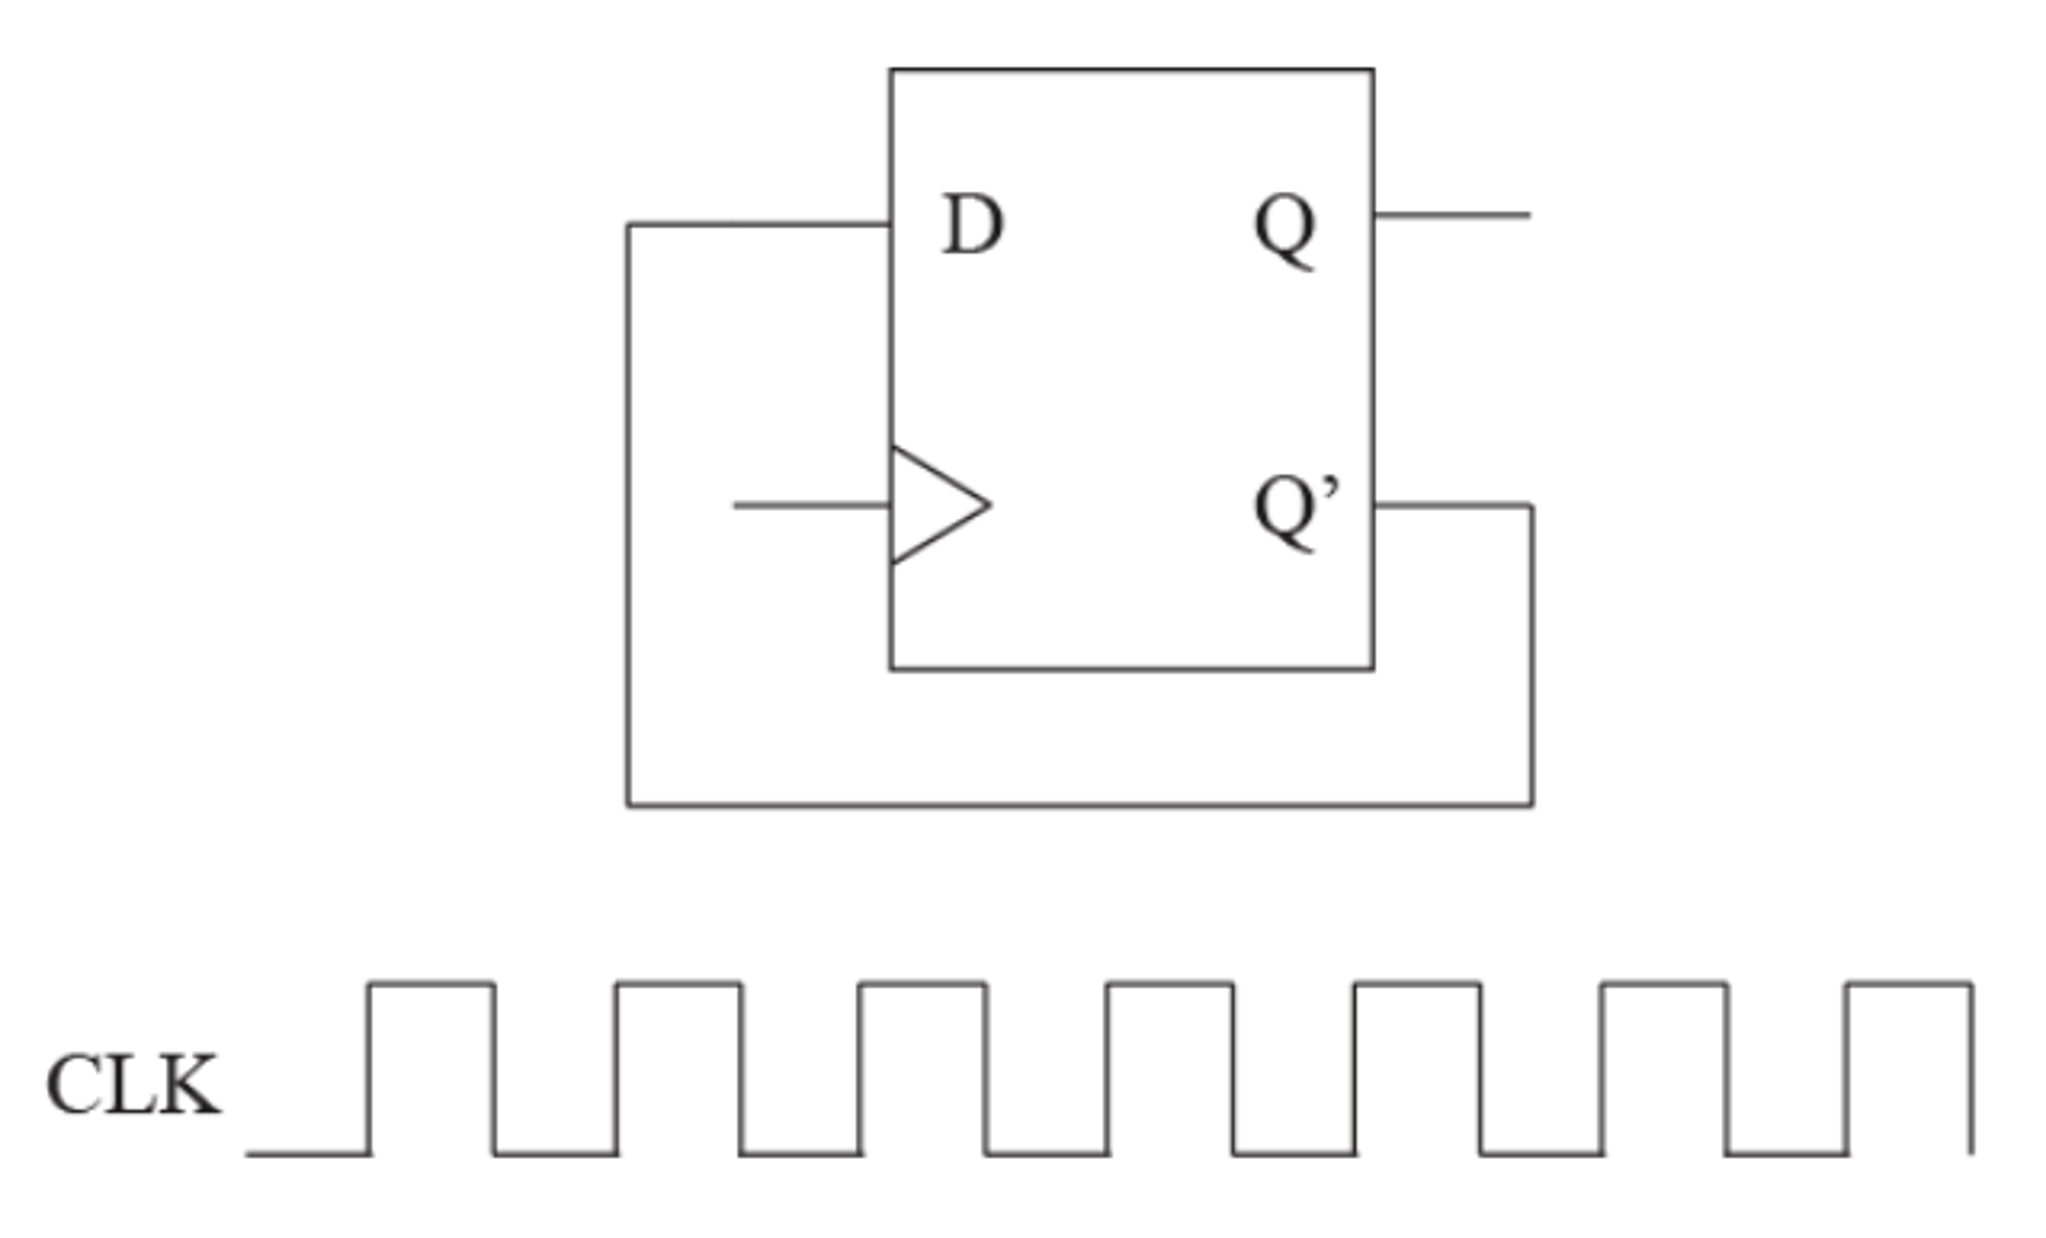 Solved Assume The Circuits Below Use Positive Edge Trigge Timing Circuit Diagram Now Draw A For This New Again All Qs Start At 0 Before First Clock Cycle Show Q And Describe What Q3 Q2 Q1 Q0